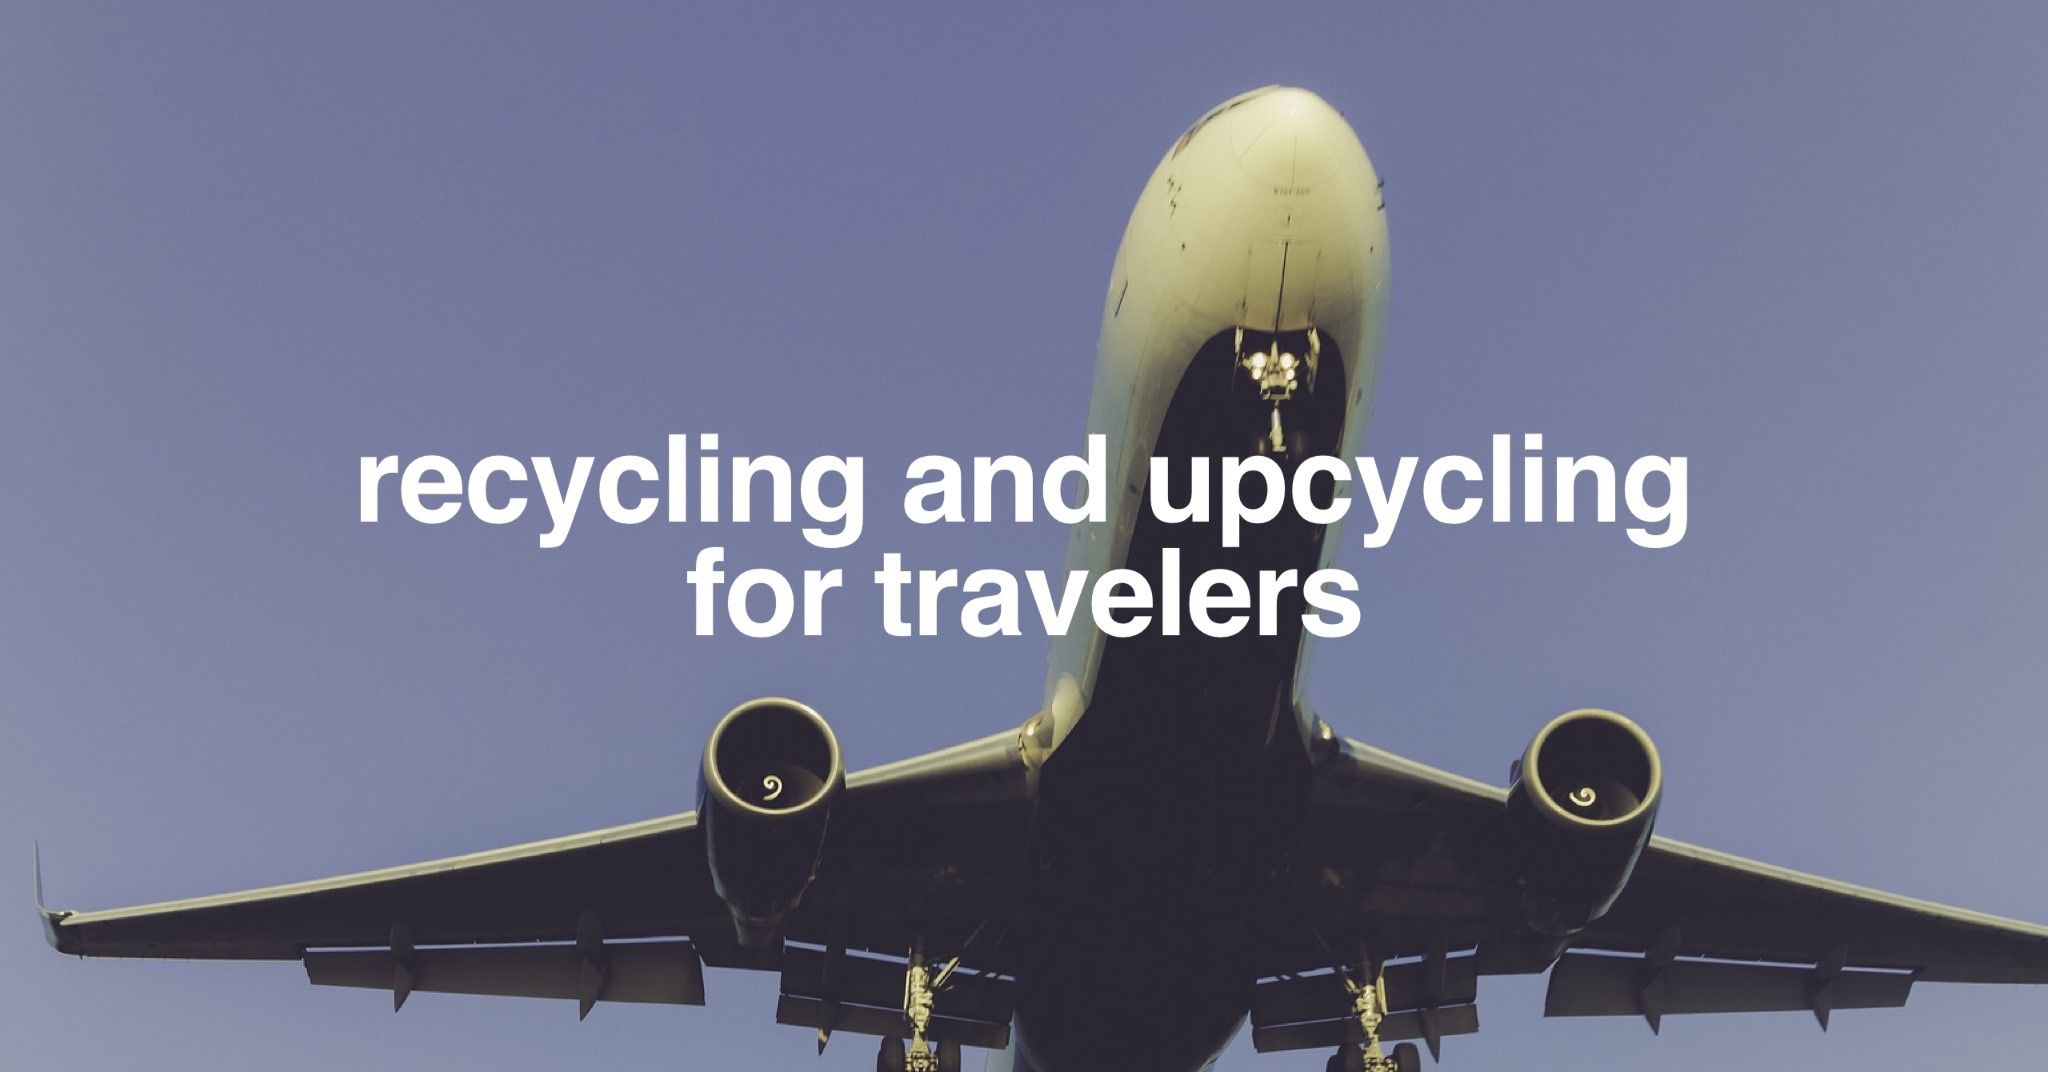 recycling-and-upcycling-for-travelers